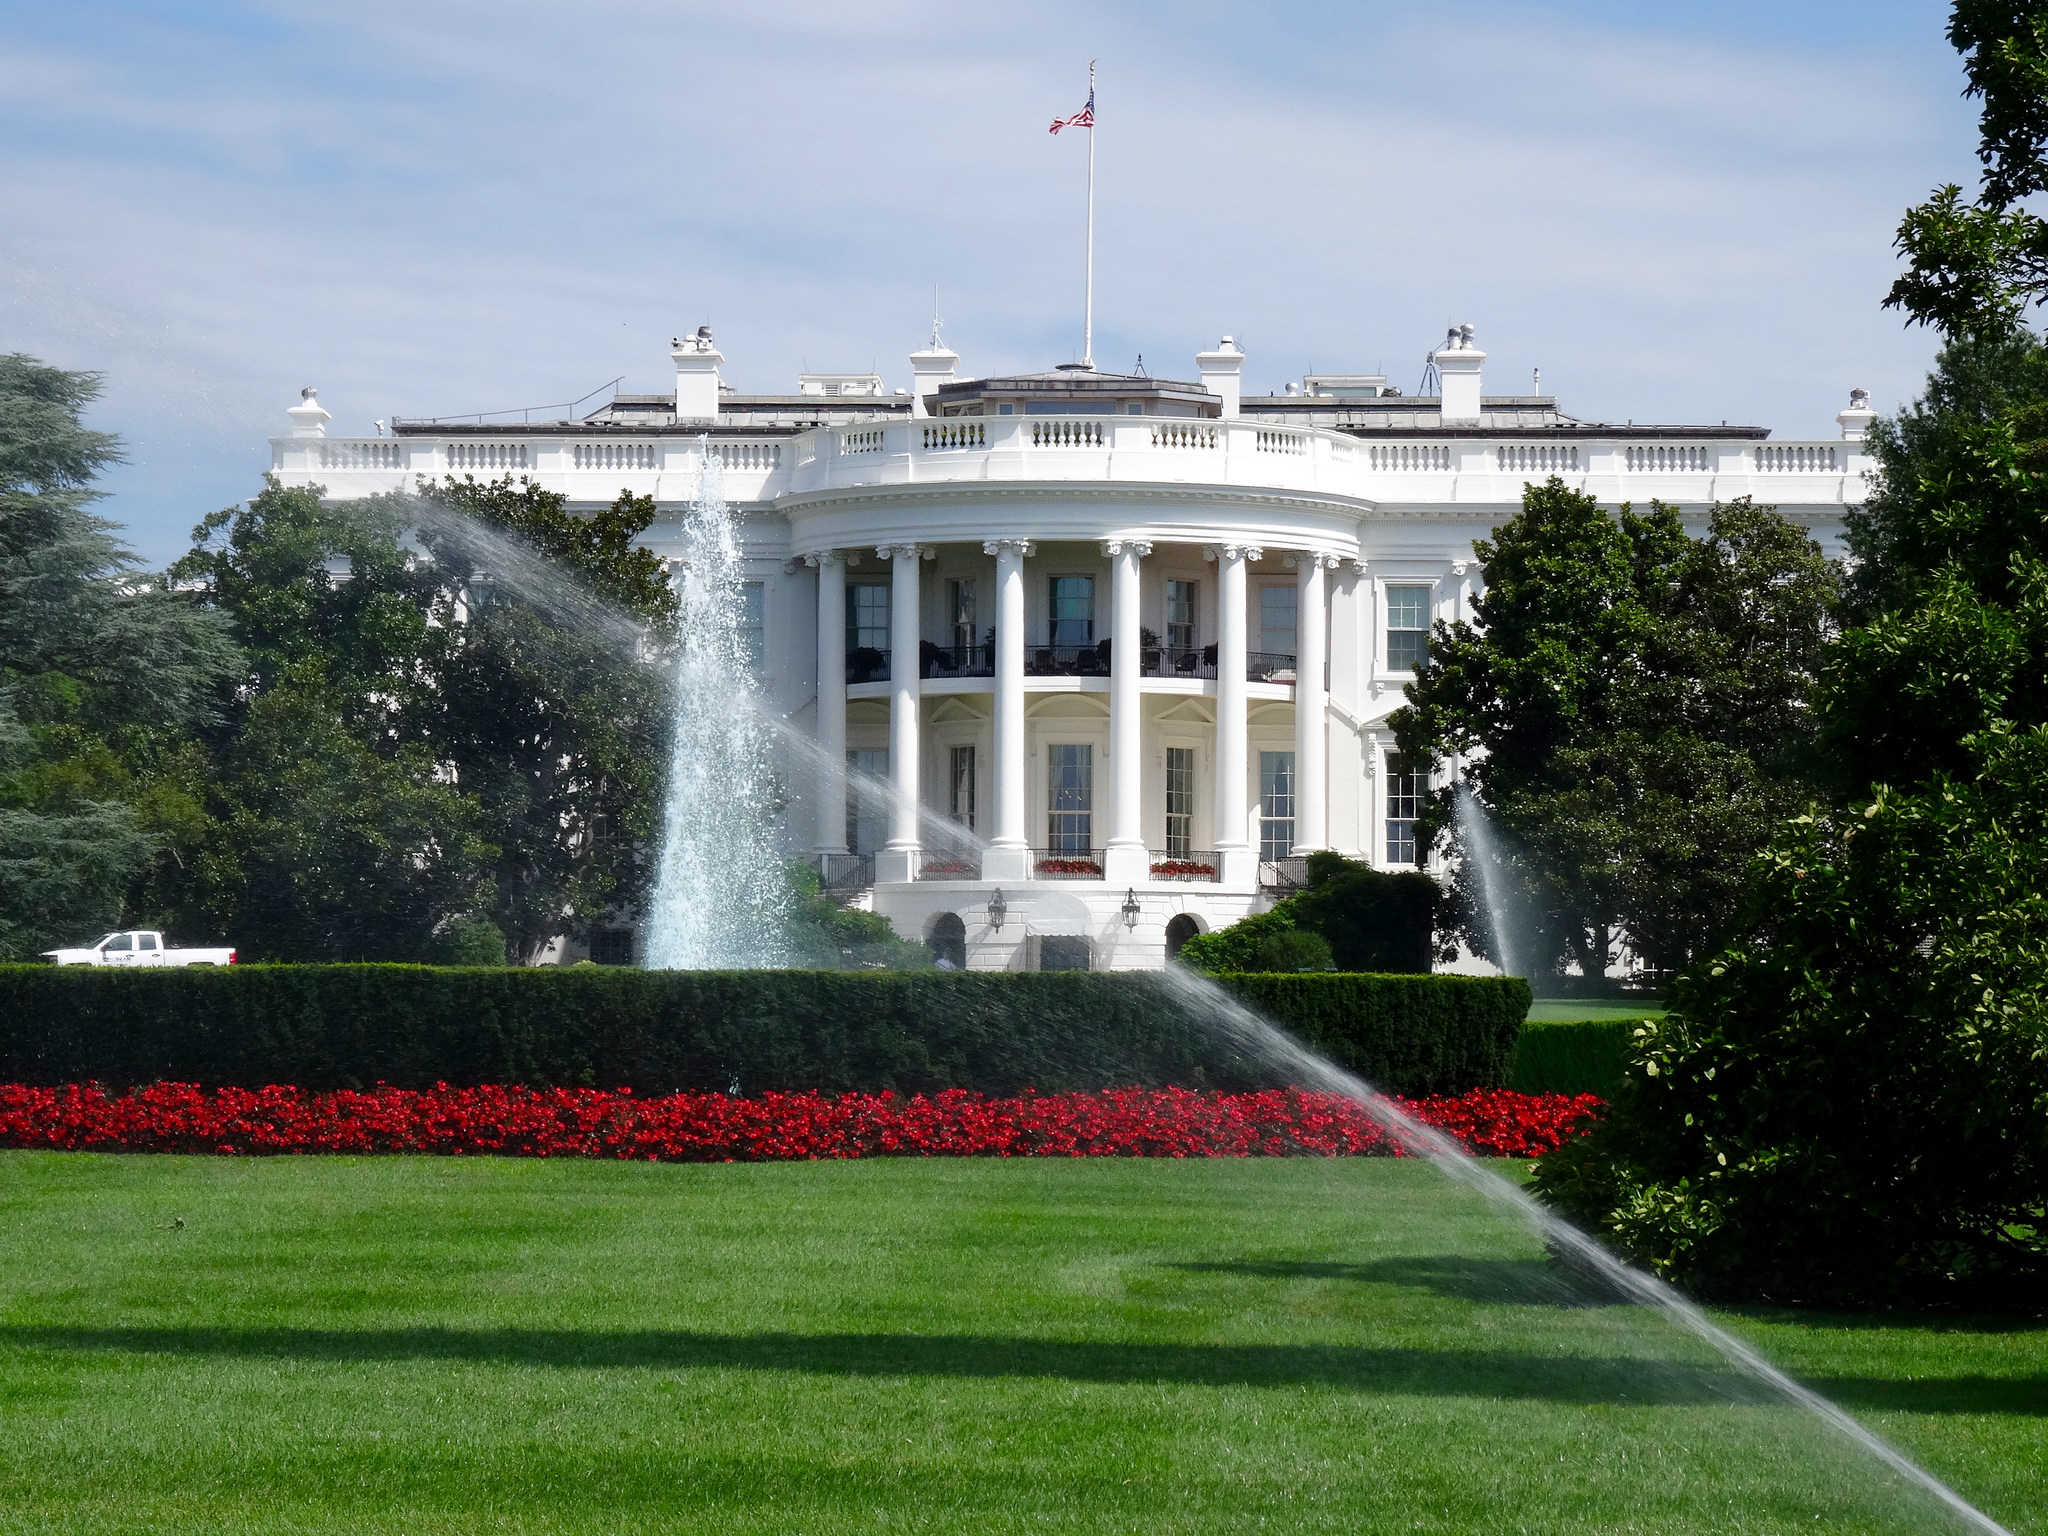 Should Apple take over the White House?